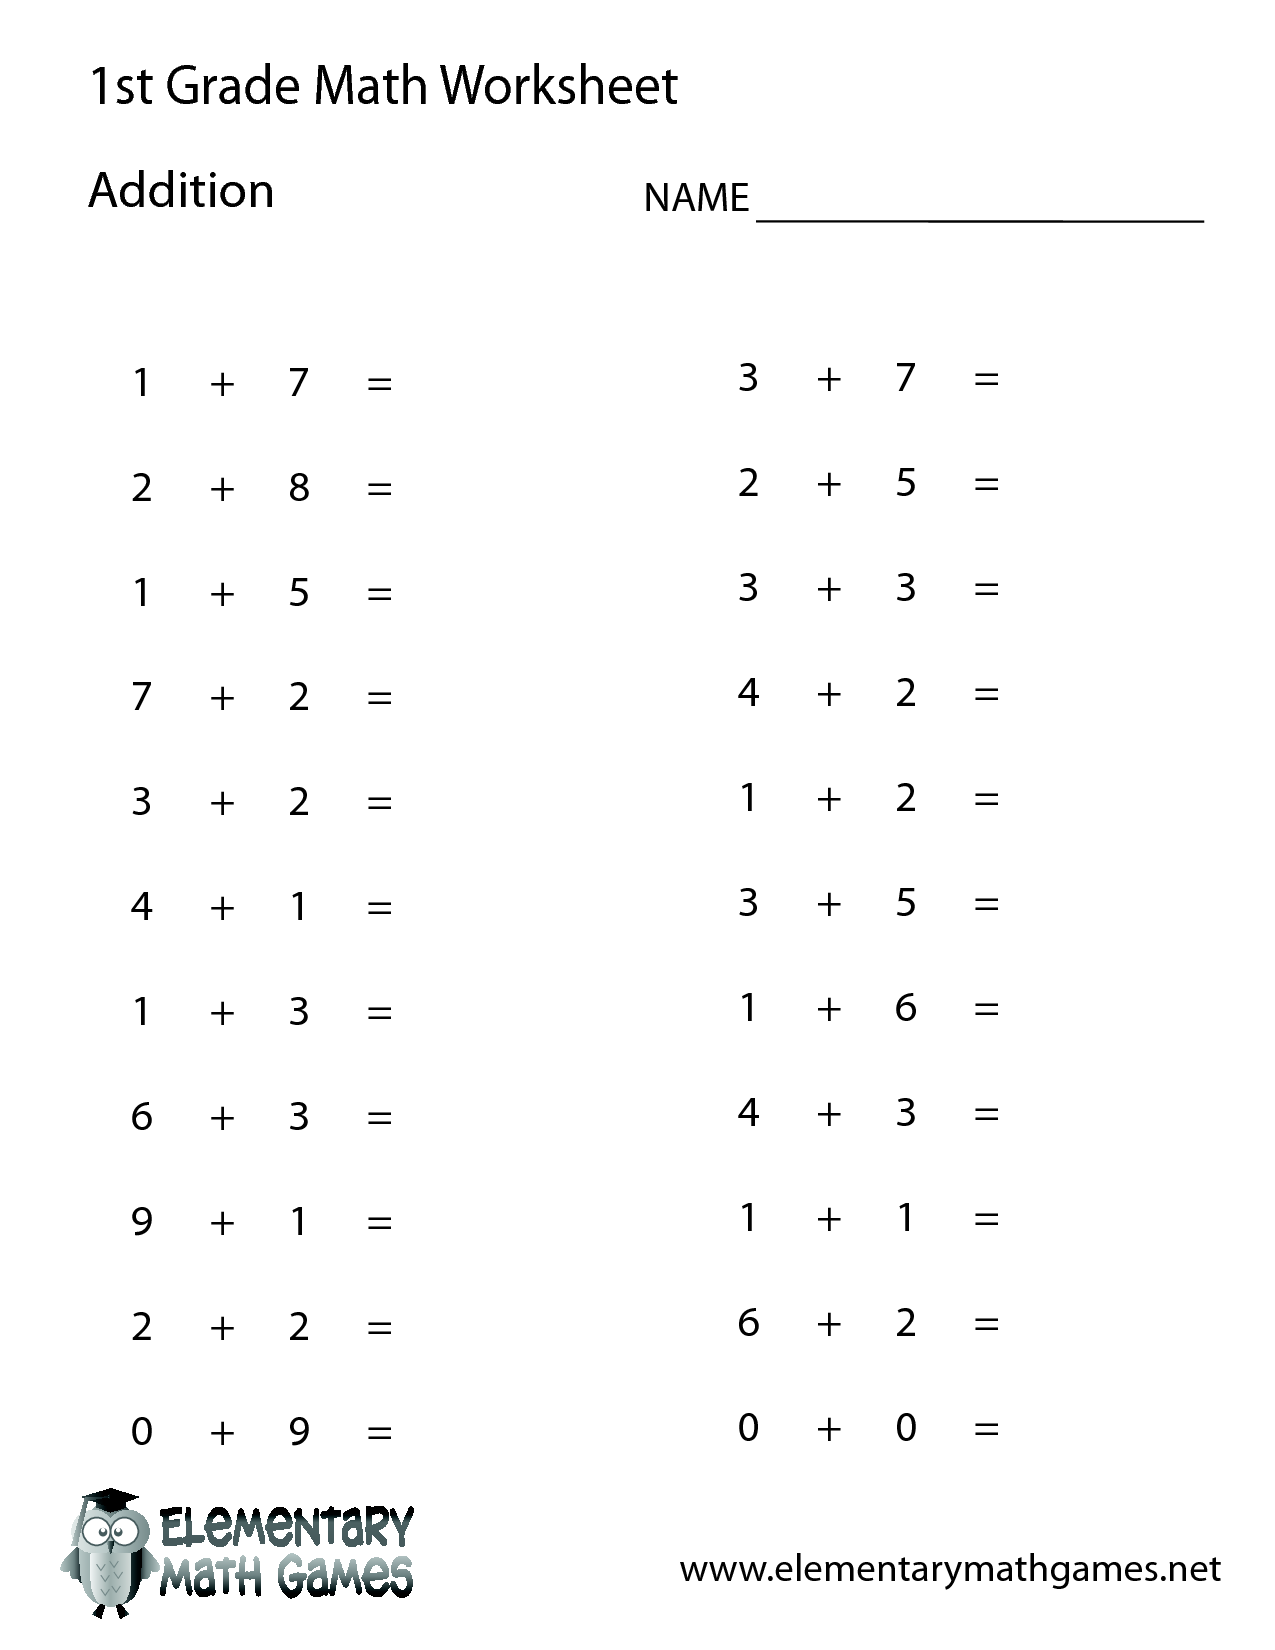 Free Worksheet Basic Math Addition Worksheets 17 best images about math worksheets on pinterest create your own simple addition and search